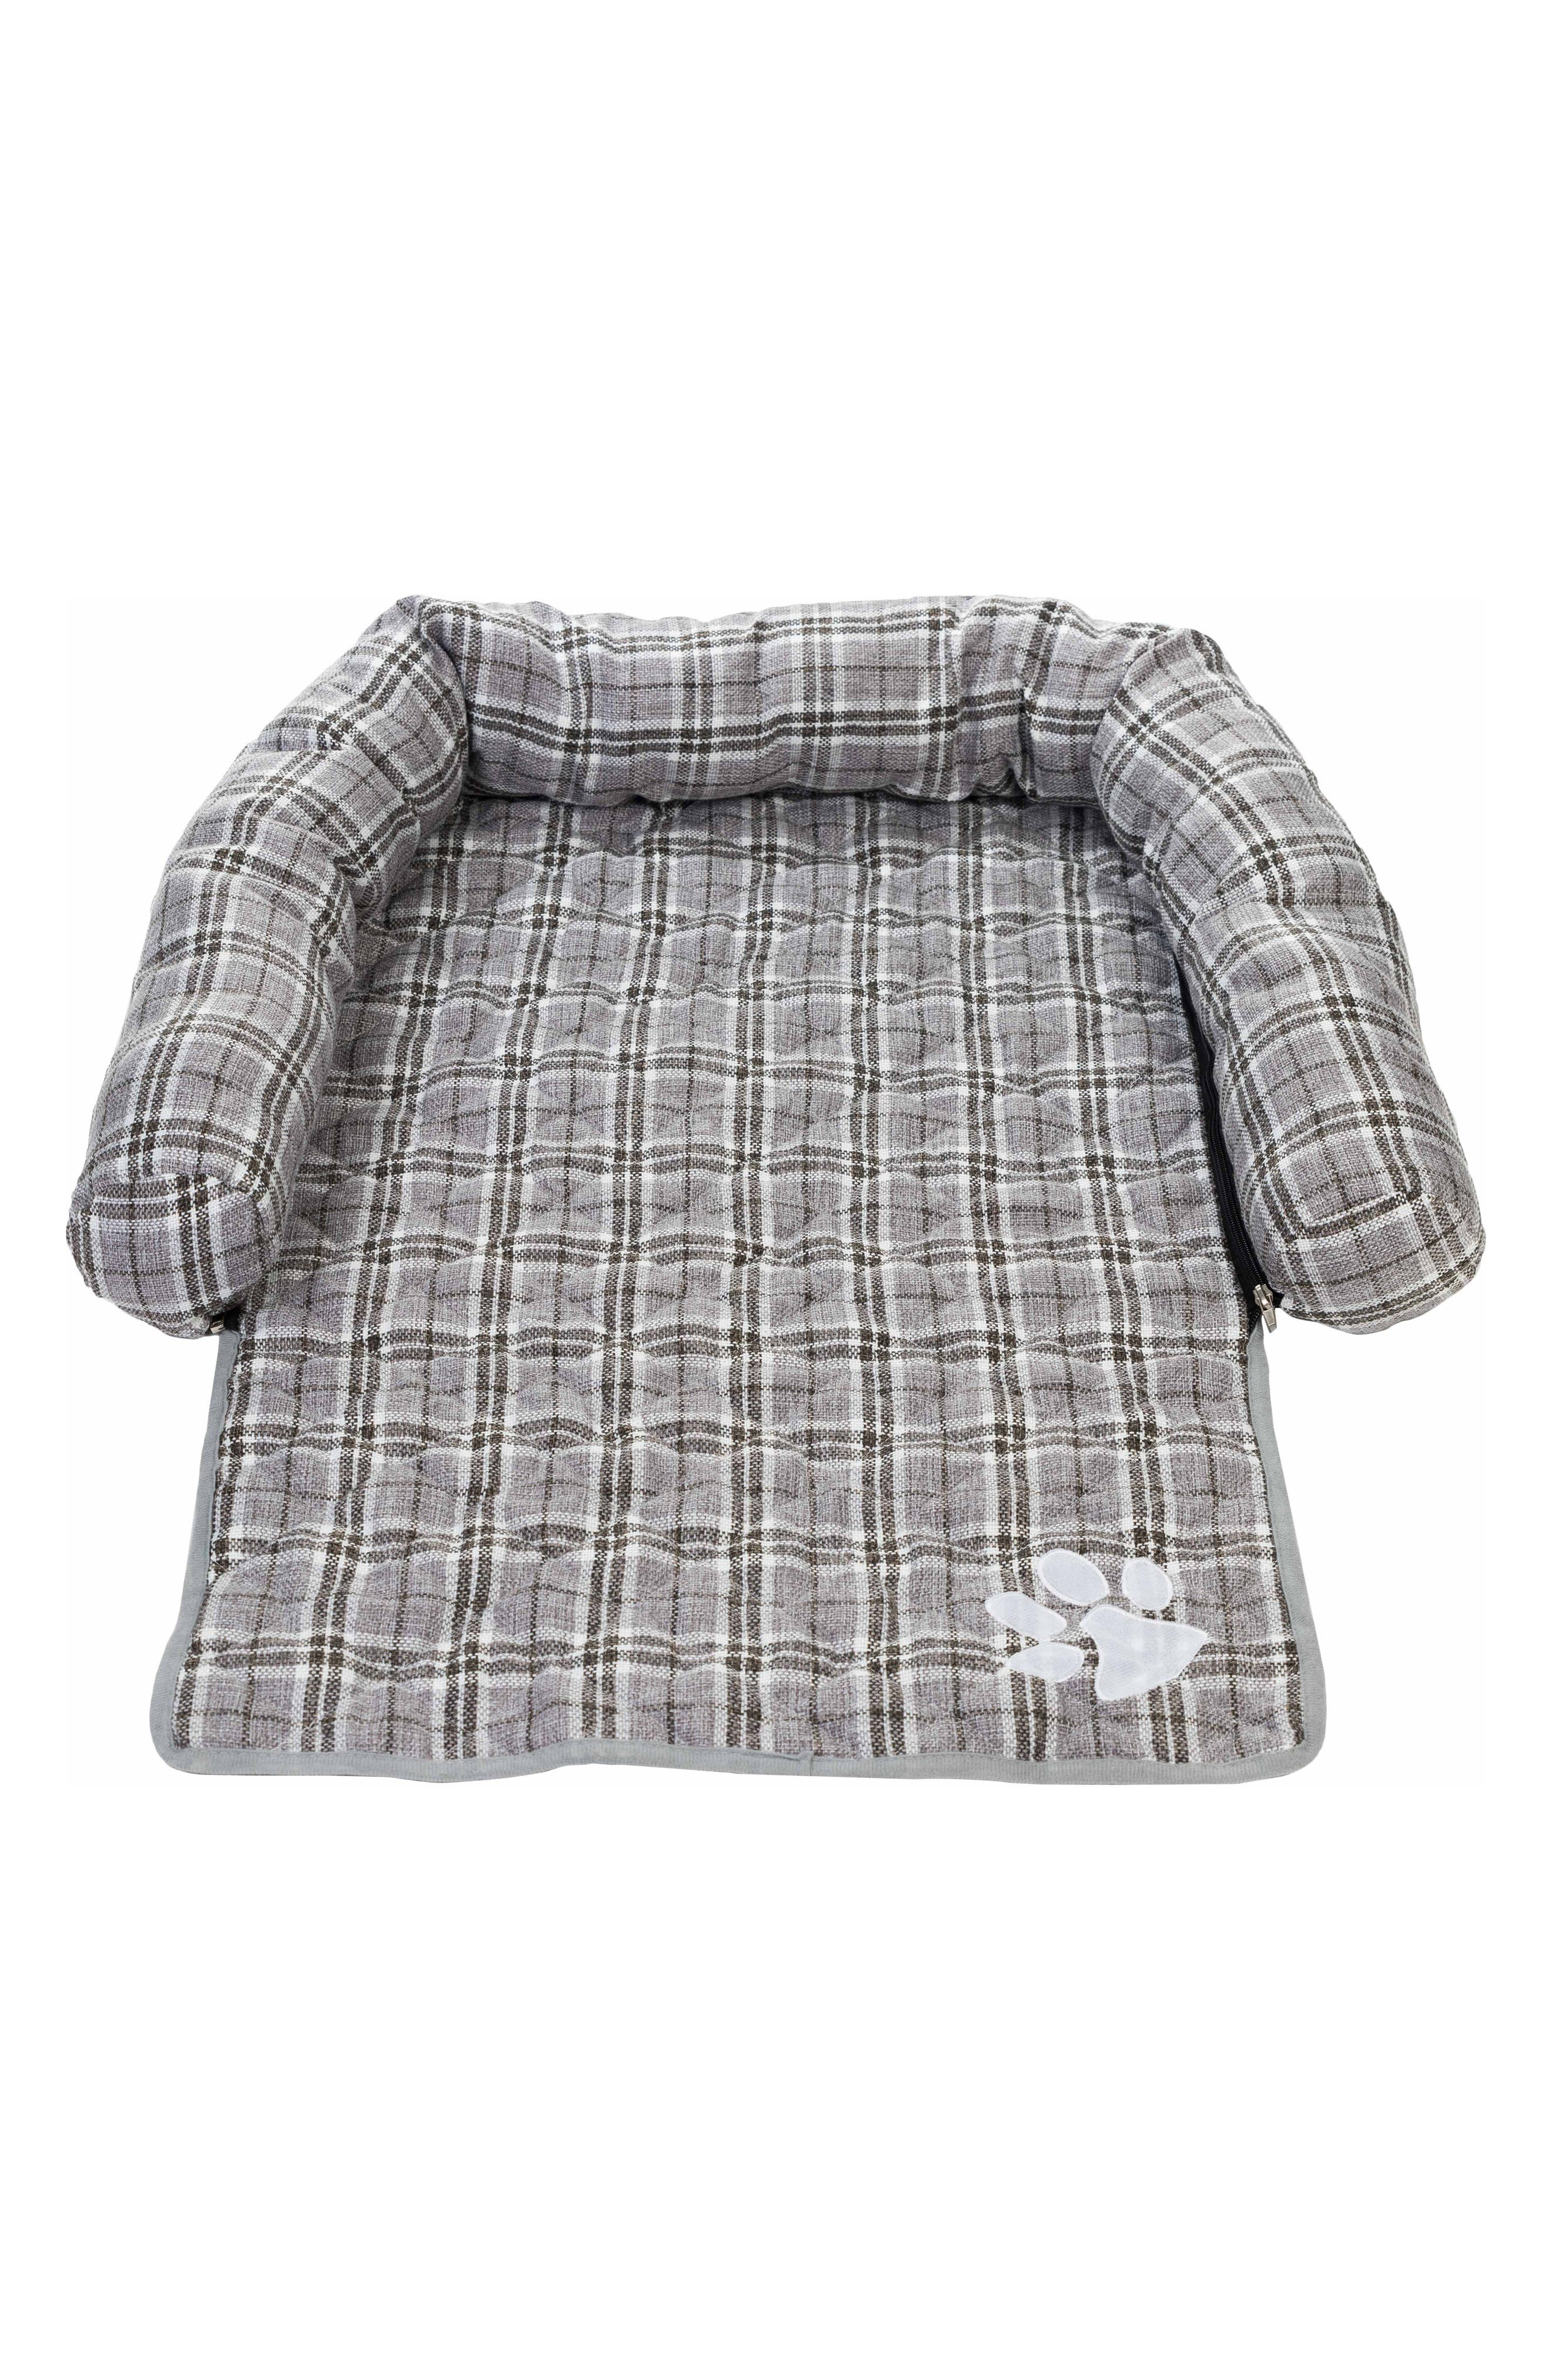 Harlee Reversible Pet Chair Cover,                             Main thumbnail 1, color,                             GREY